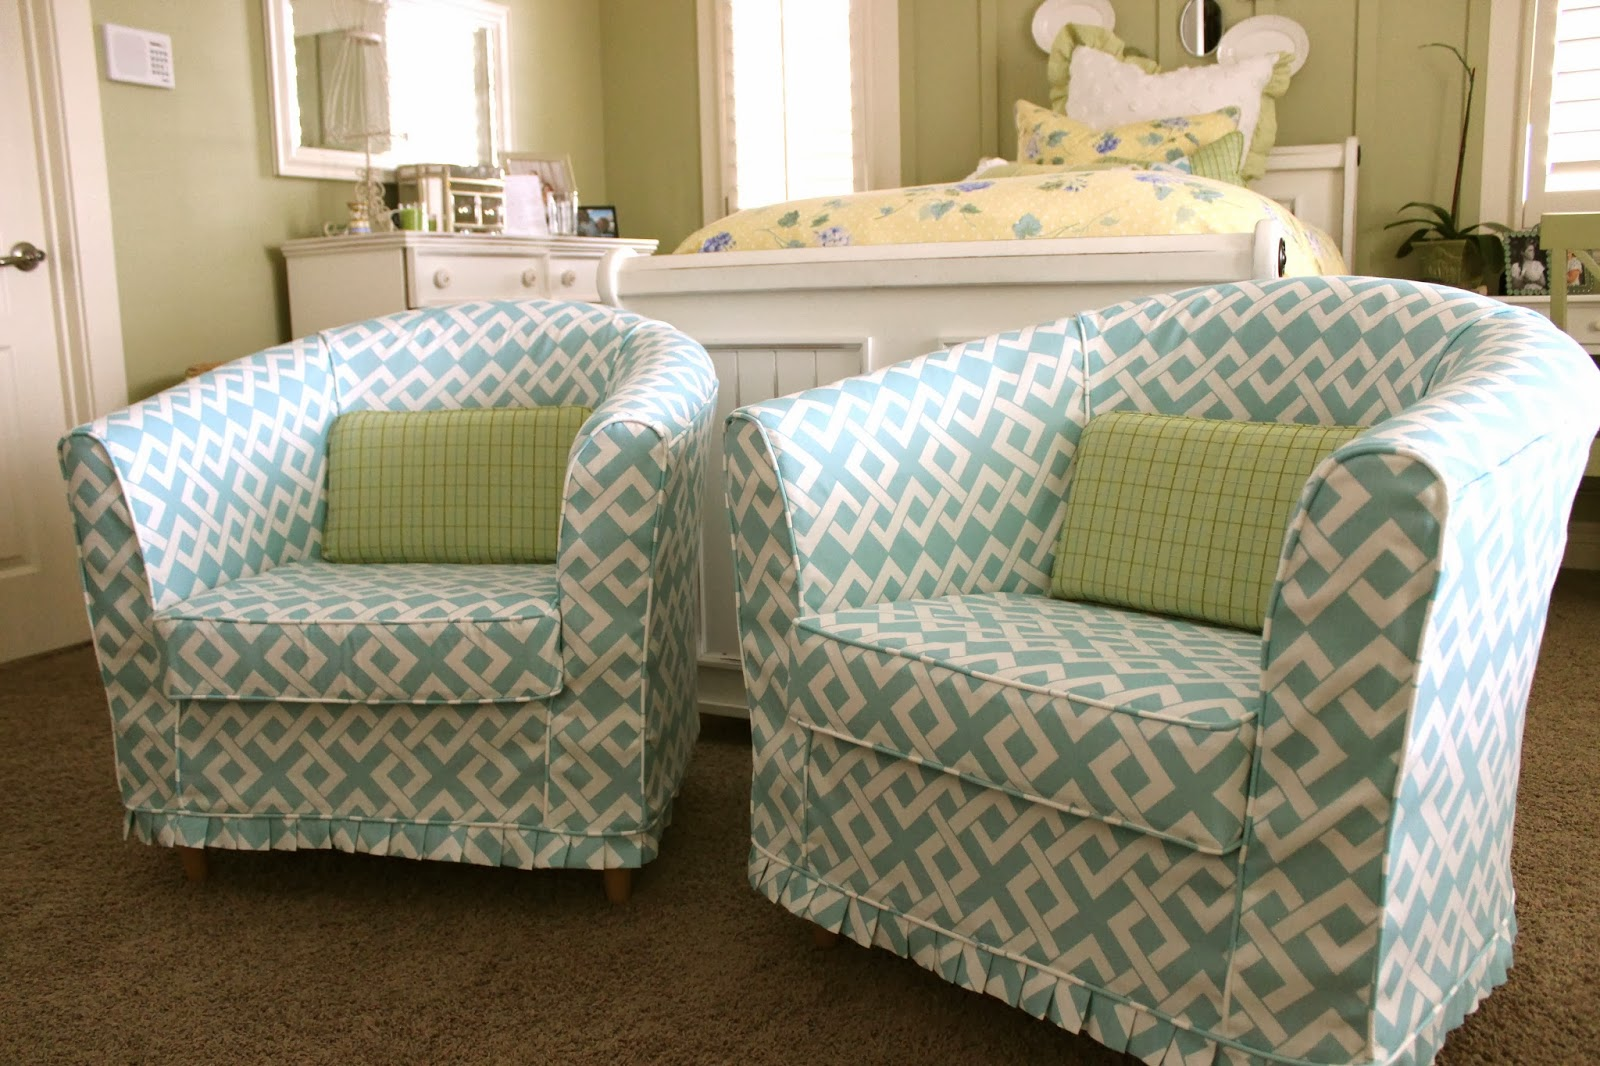 custom slipcovers by shelley pair of barrel chairs. Black Bedroom Furniture Sets. Home Design Ideas